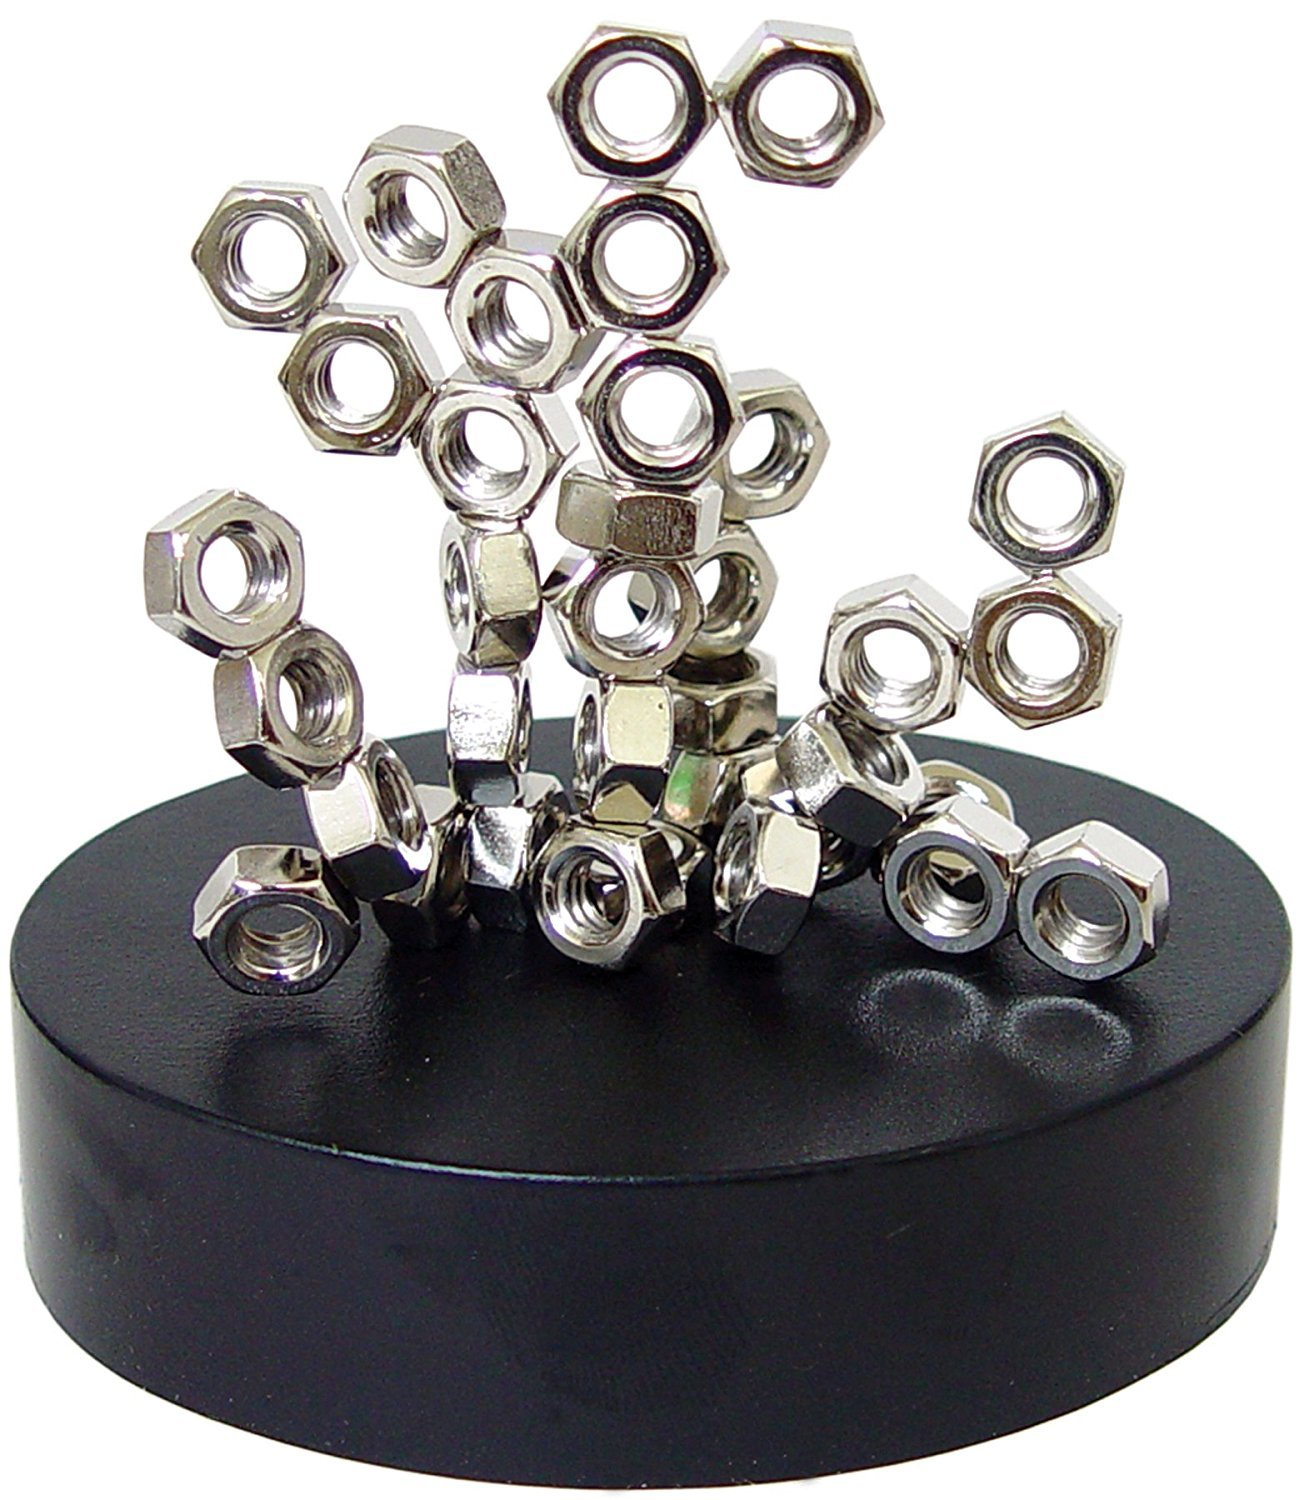 Linlinzz Magnetic Sculpture - Desk Toy for Intelligence Development Stress Relief (Nuts)